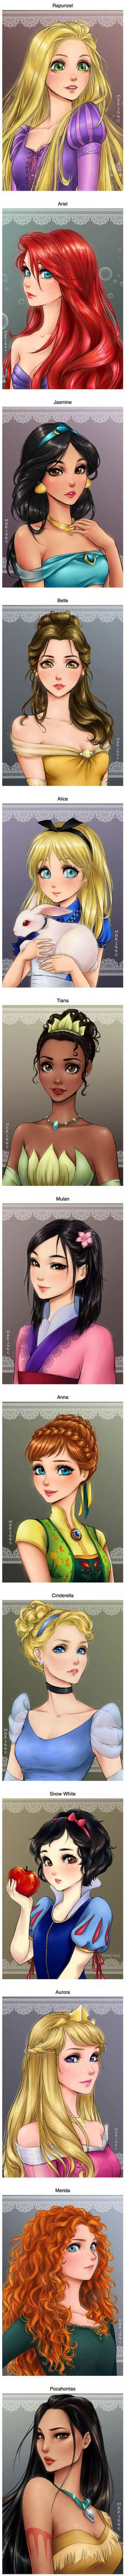 This is what Disney princesses would look like if they were anime characters (By Jasmine Mari945)